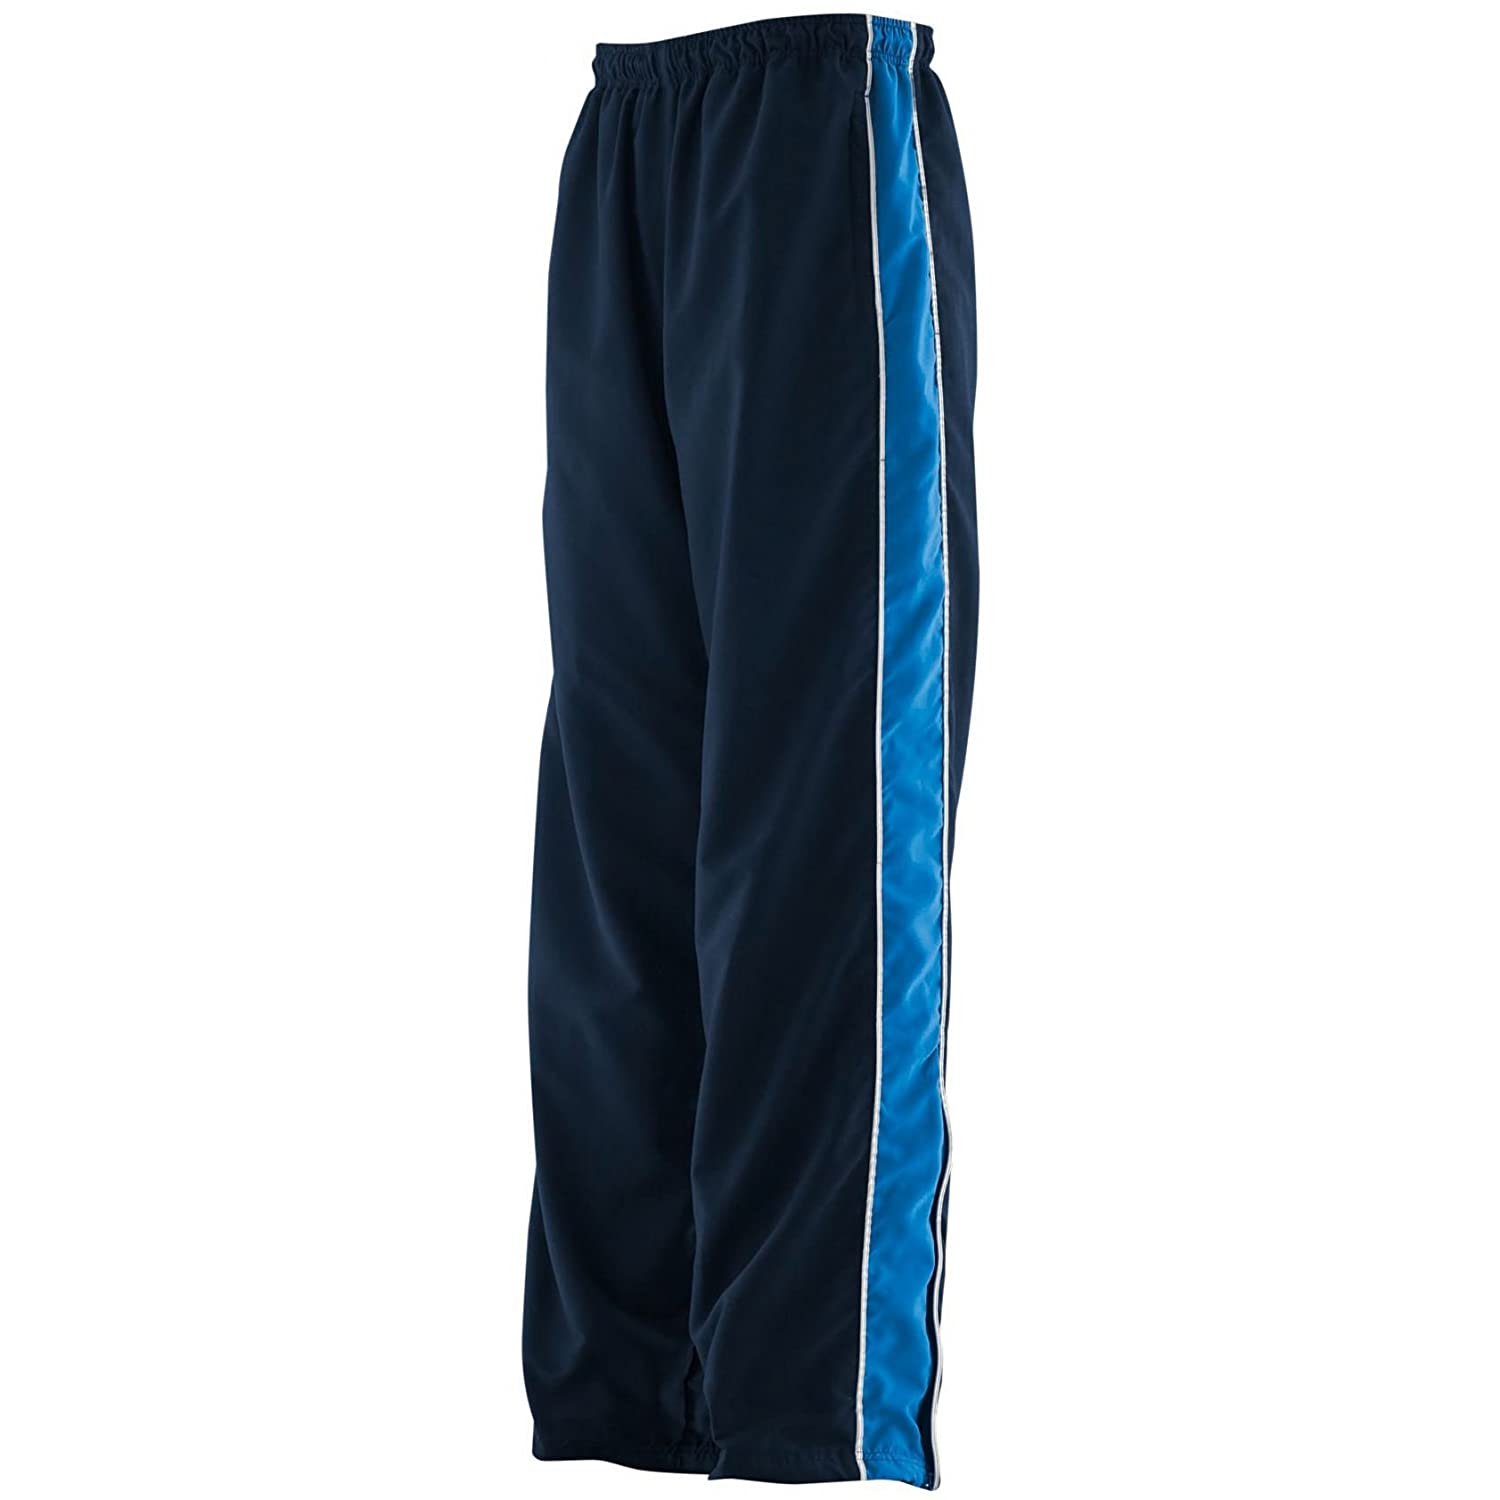 Finden-Hales-Sports-activewear-Kids piped track Jogging pant